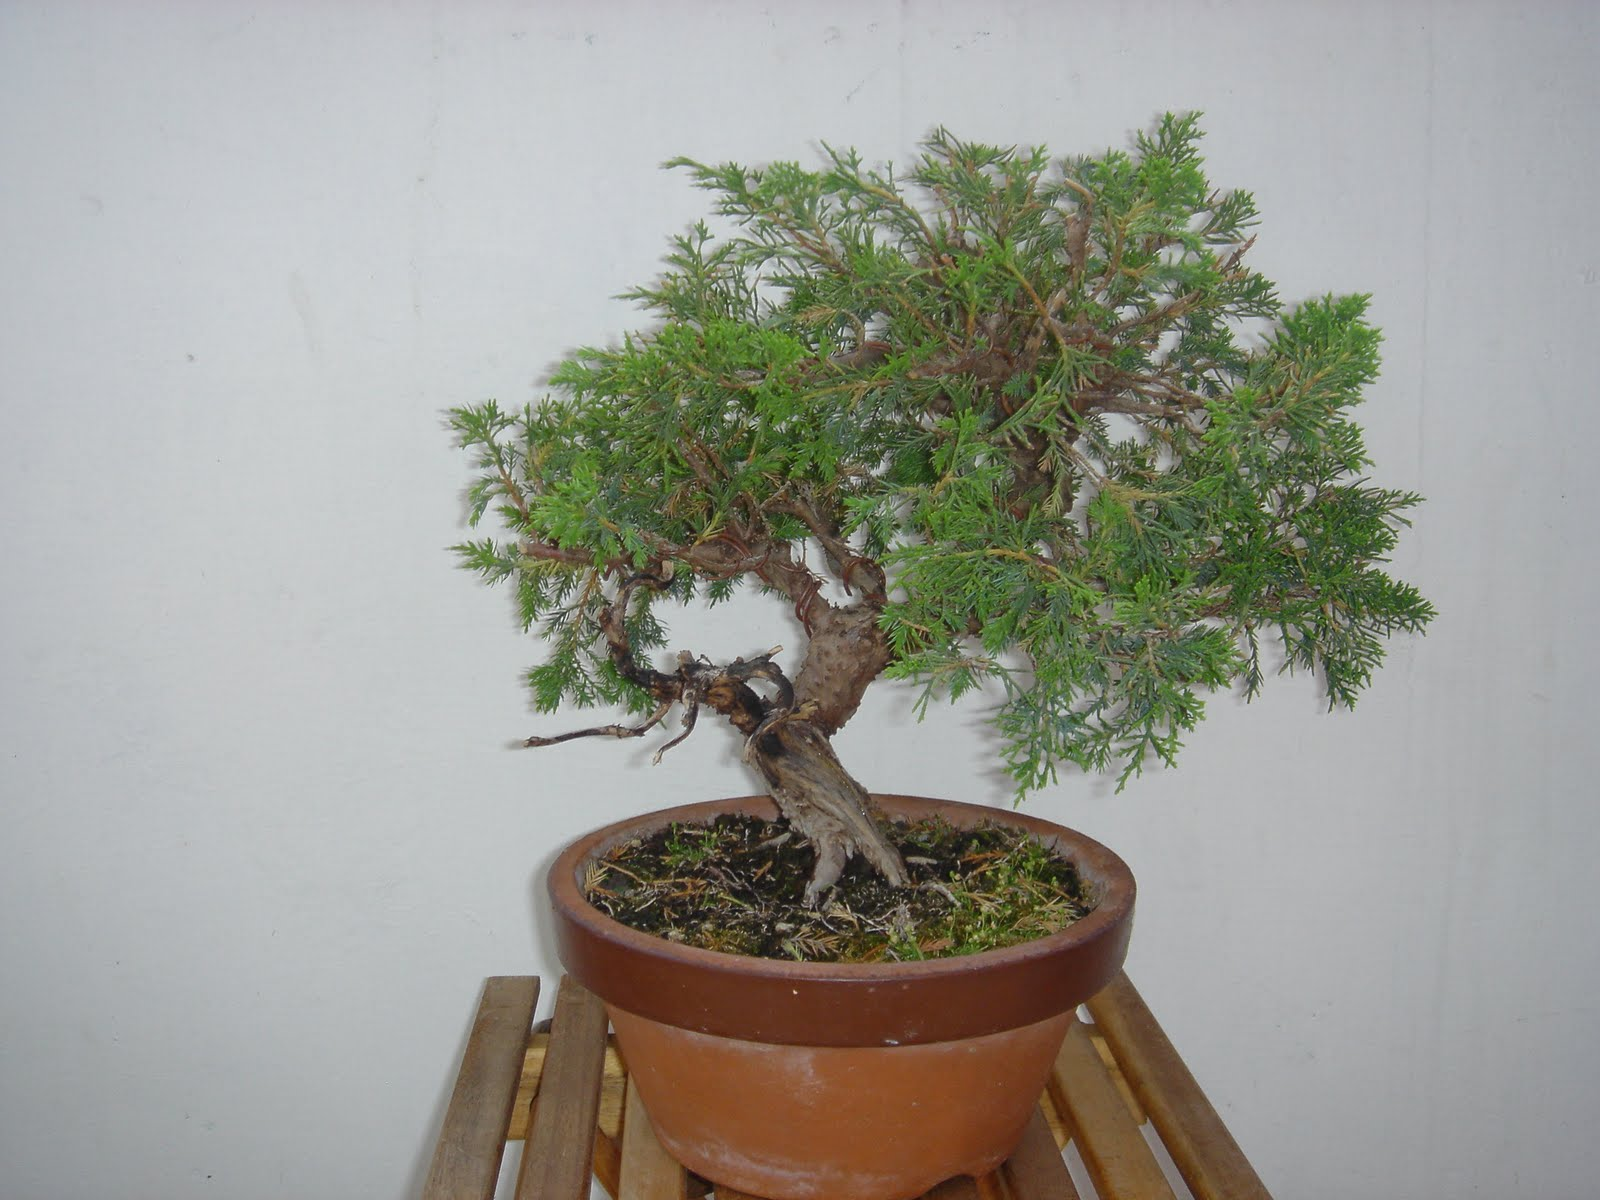 Work On New Juniper SHARI Amp JINS Kenneth Olsen39s Bonsai Blog